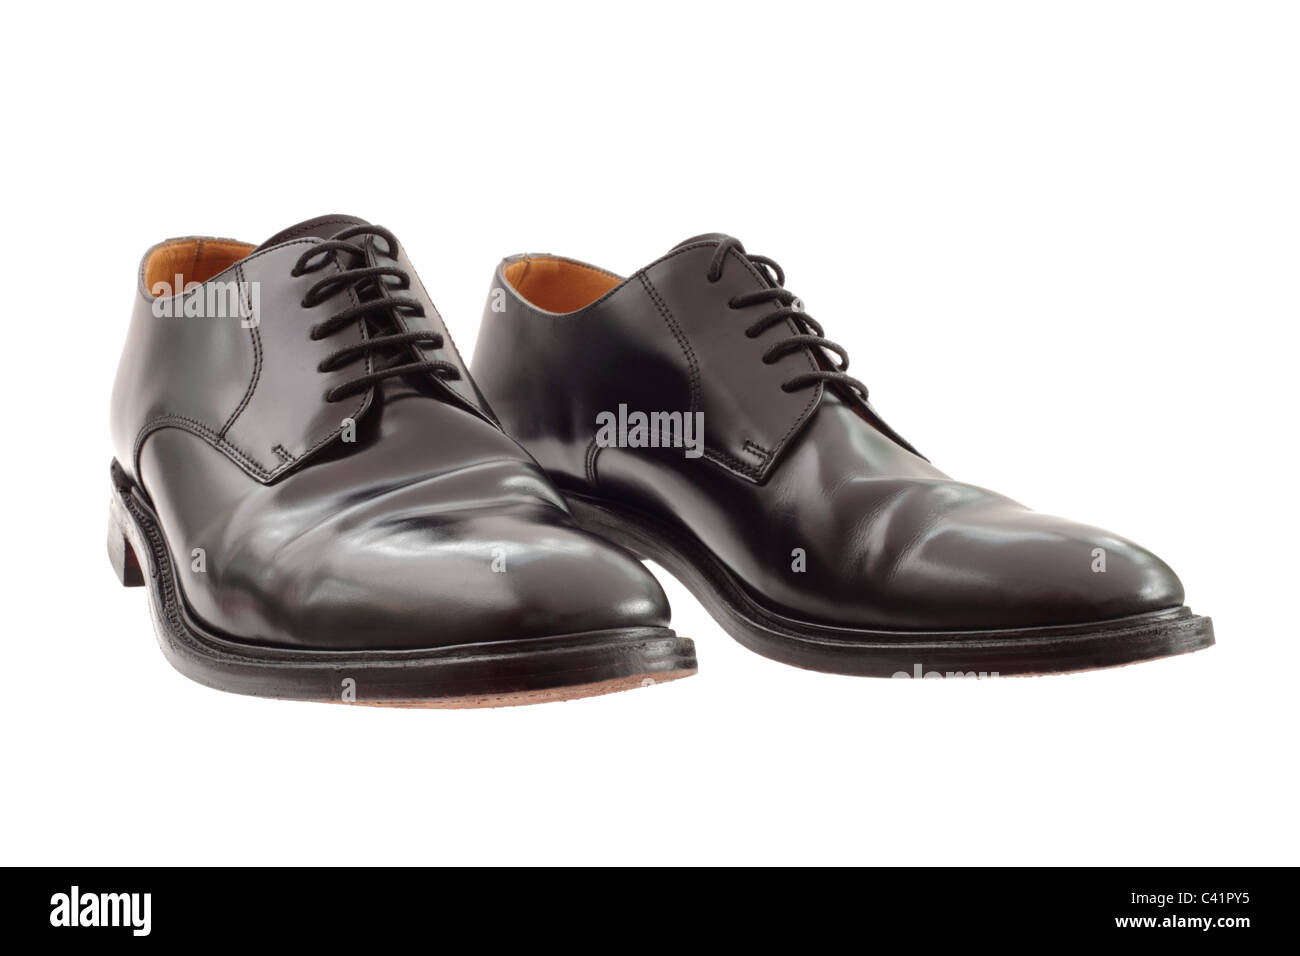 a pair of mens size 9 polished black leather shoes with